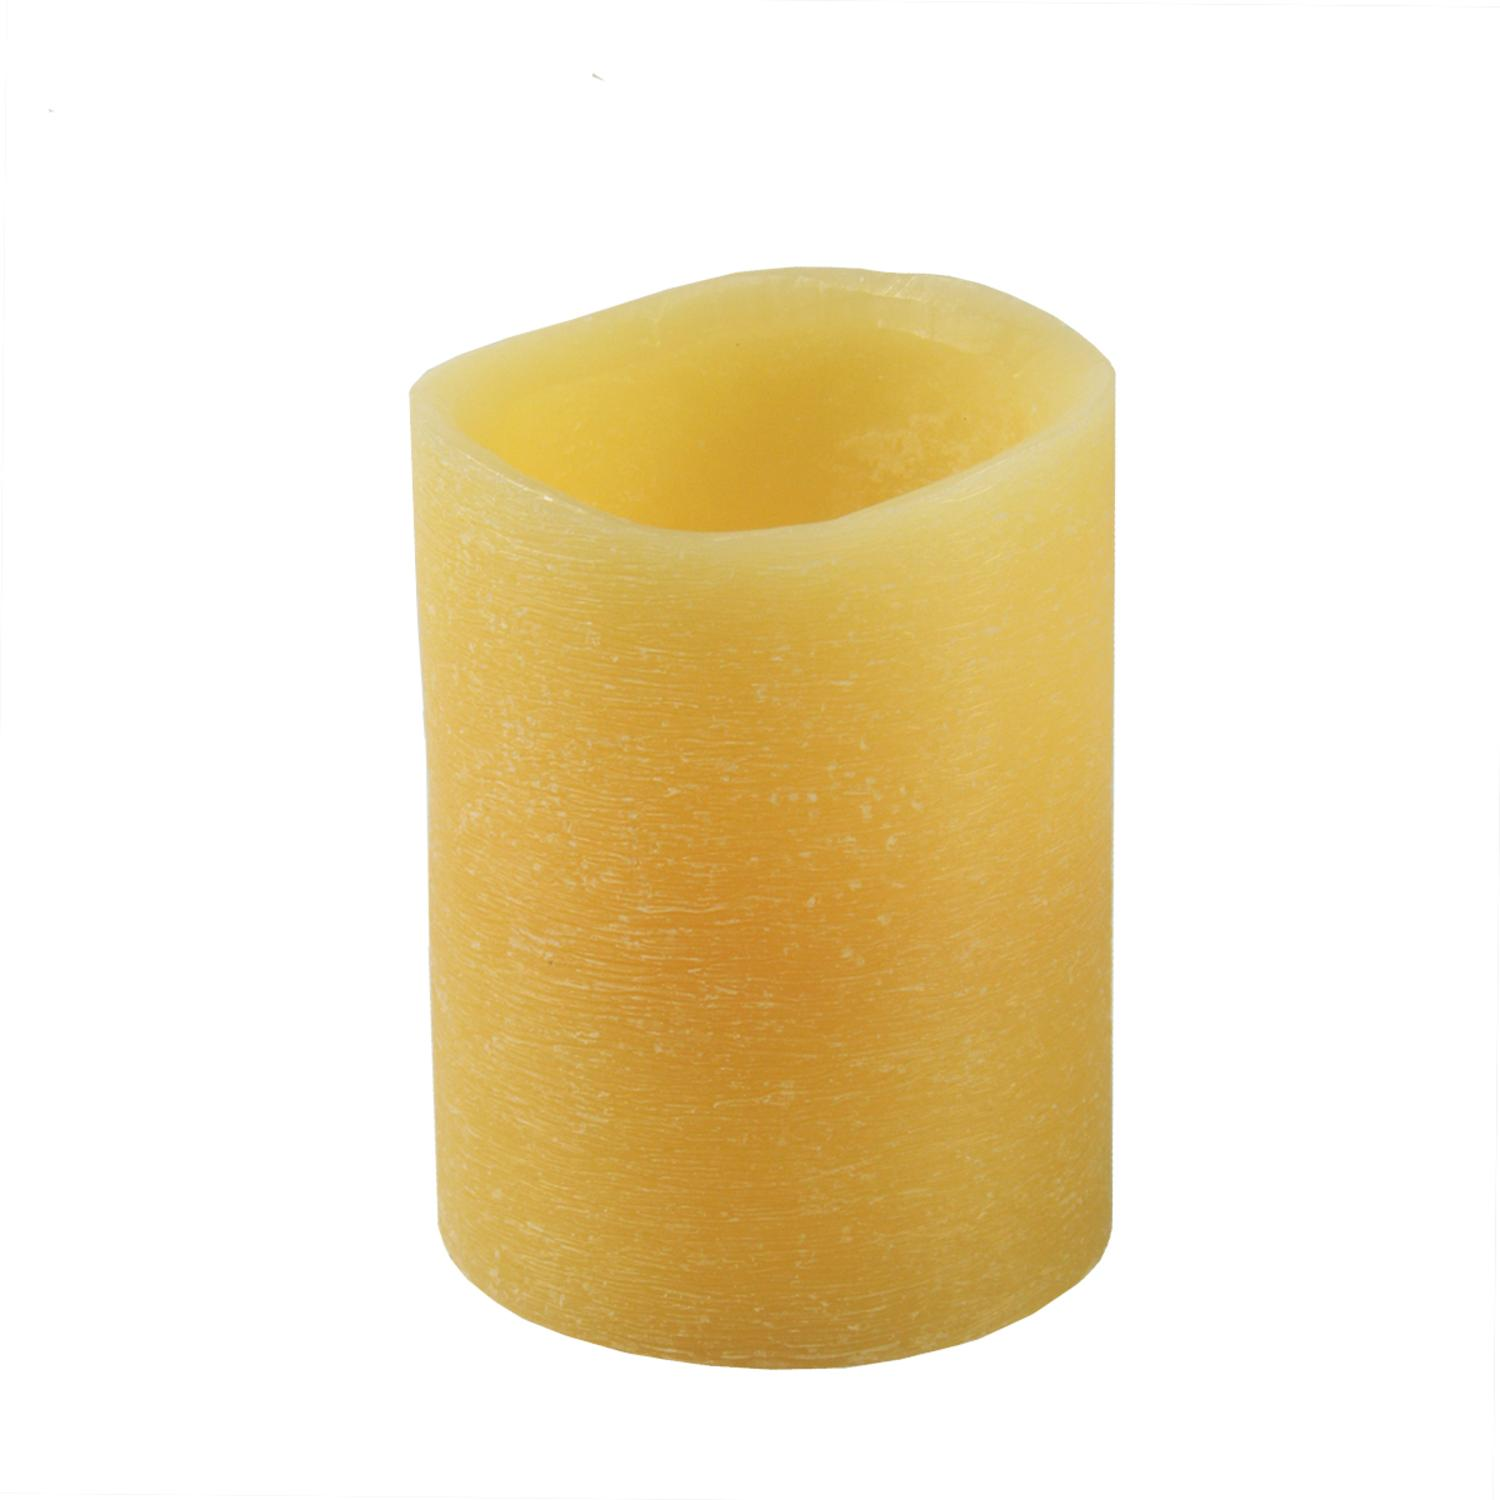 "4"" Golden Amber Battery Operated Flameless LED Wax Christmas Pillar Candle"